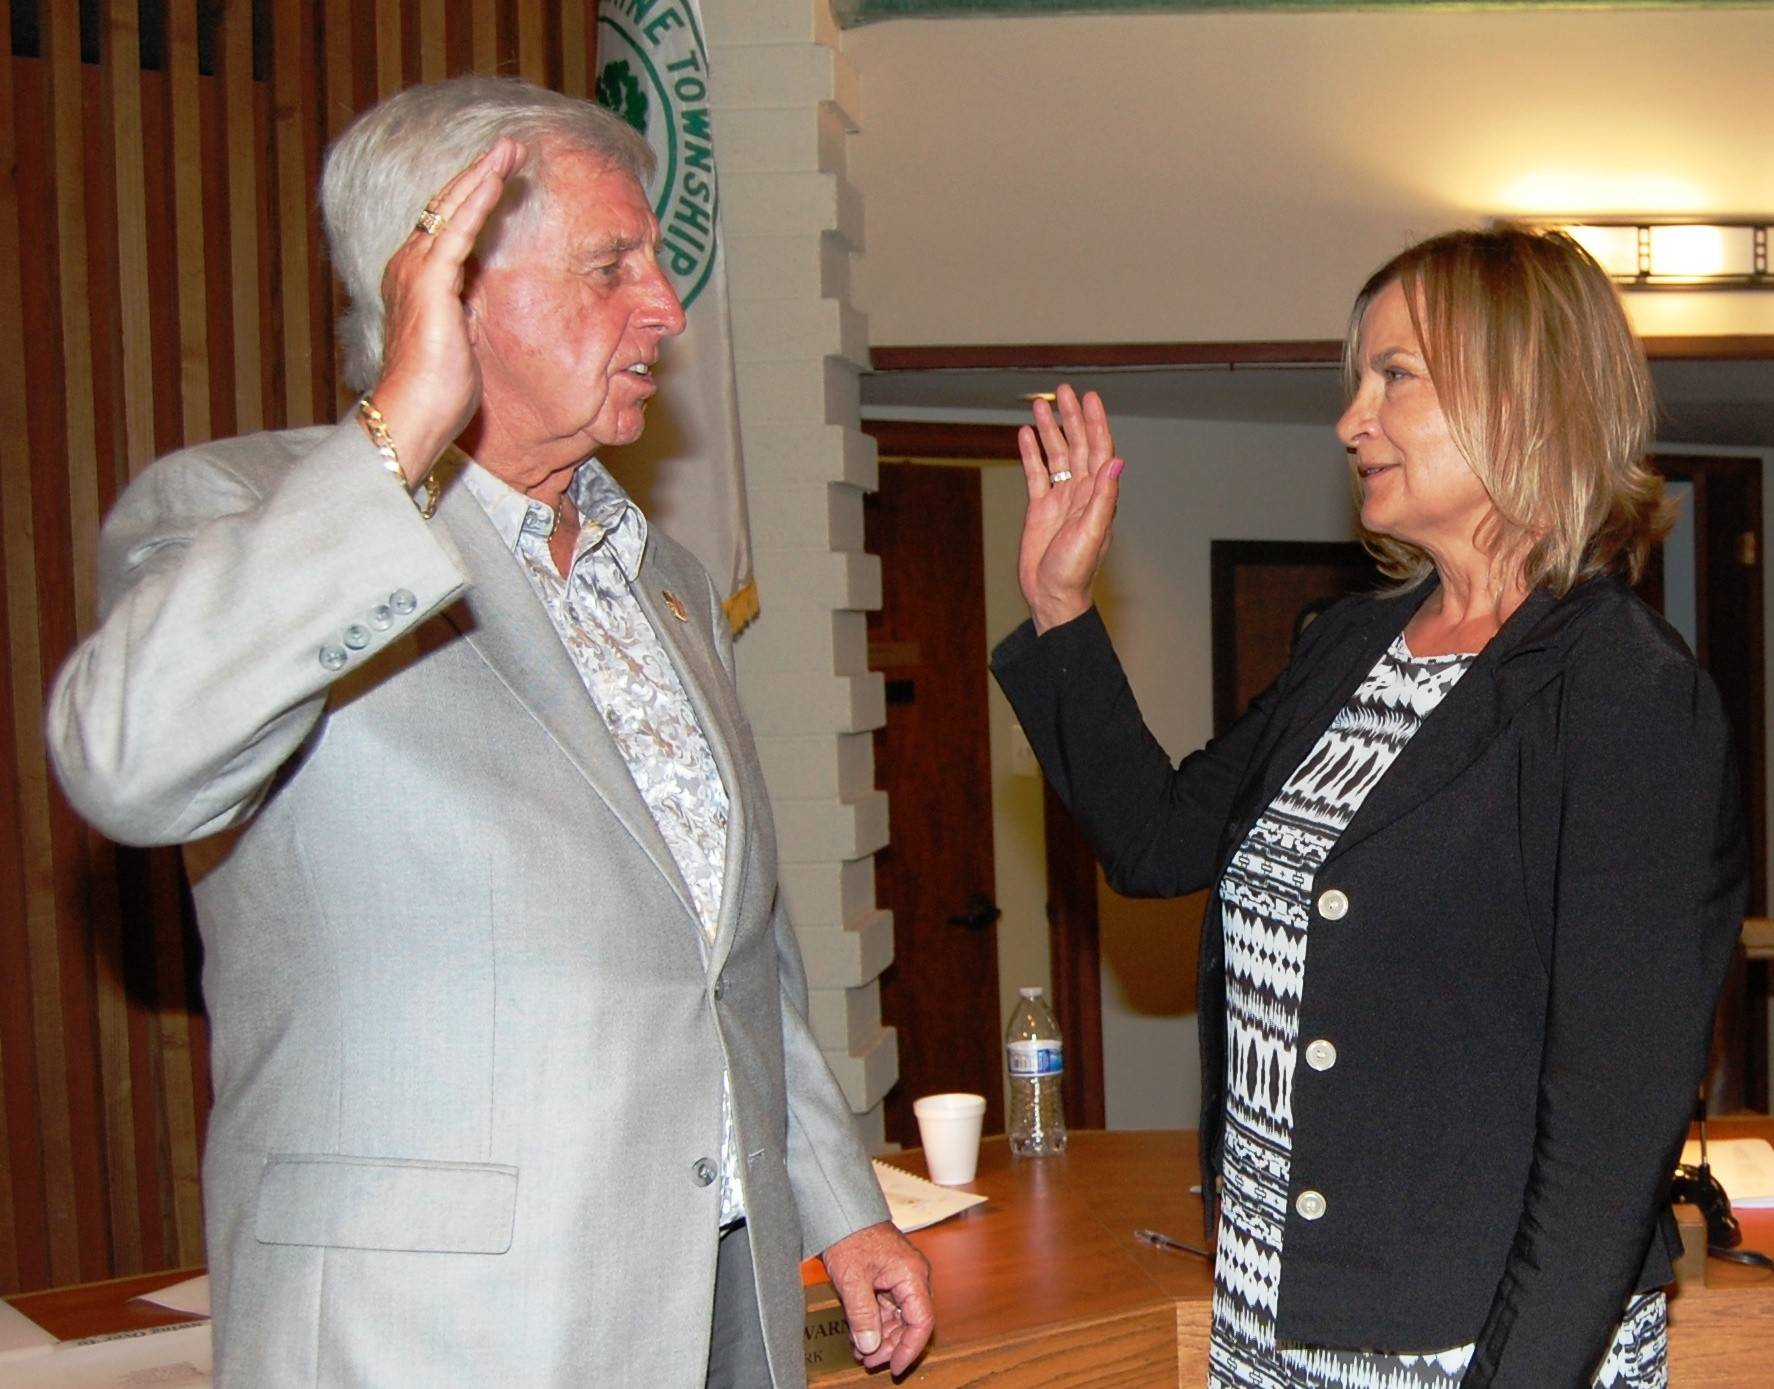 Maine Township Clerk Gary Warner swears in Susan Moylan Krey as township assessor Tuesday night.